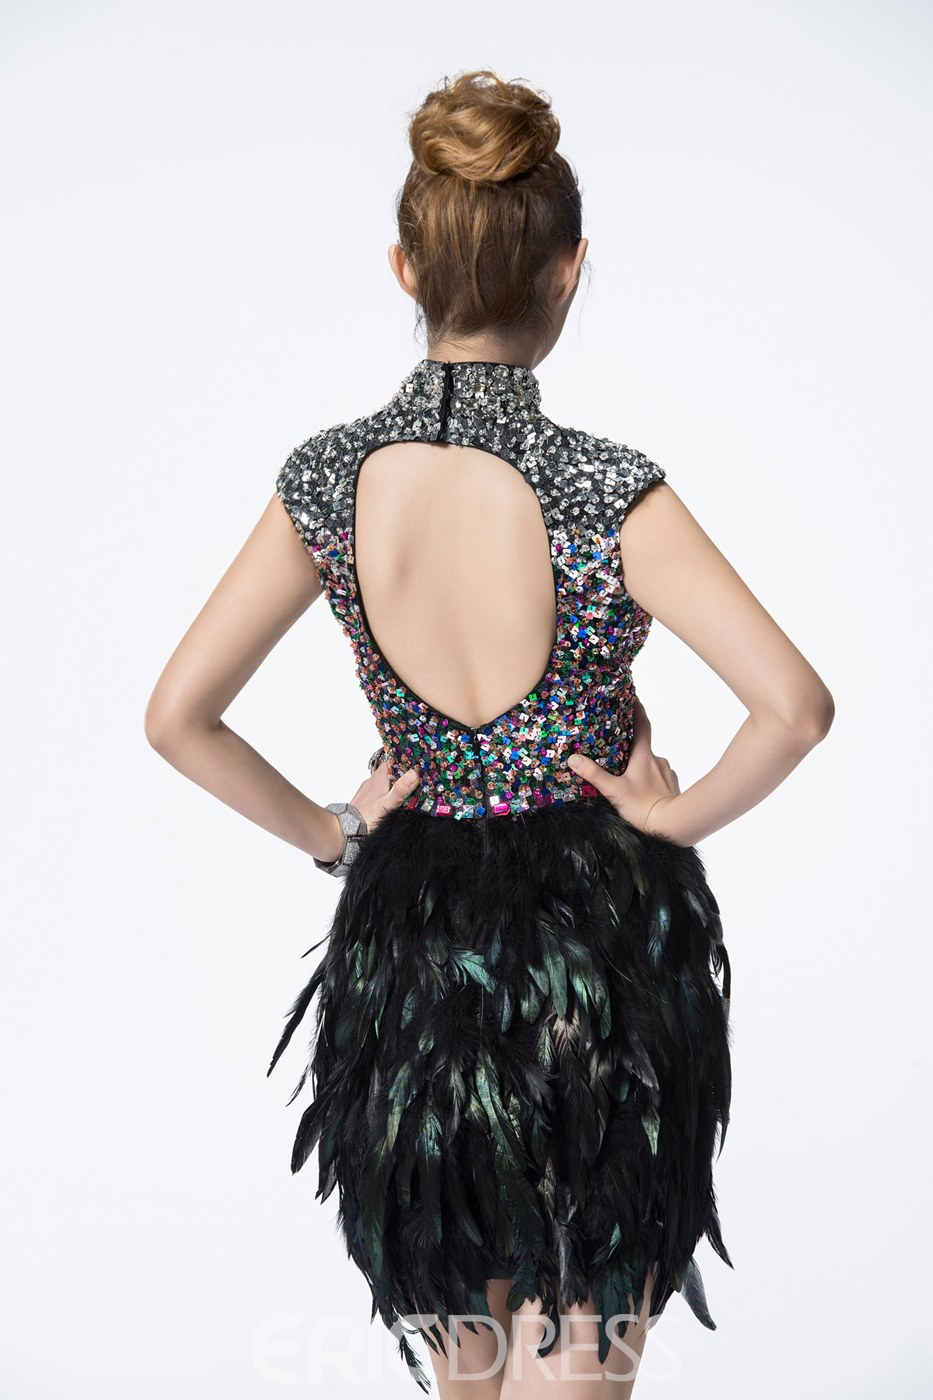 Stylish Sheath High Neckline Backless Feathers Mini Cocktail Dress